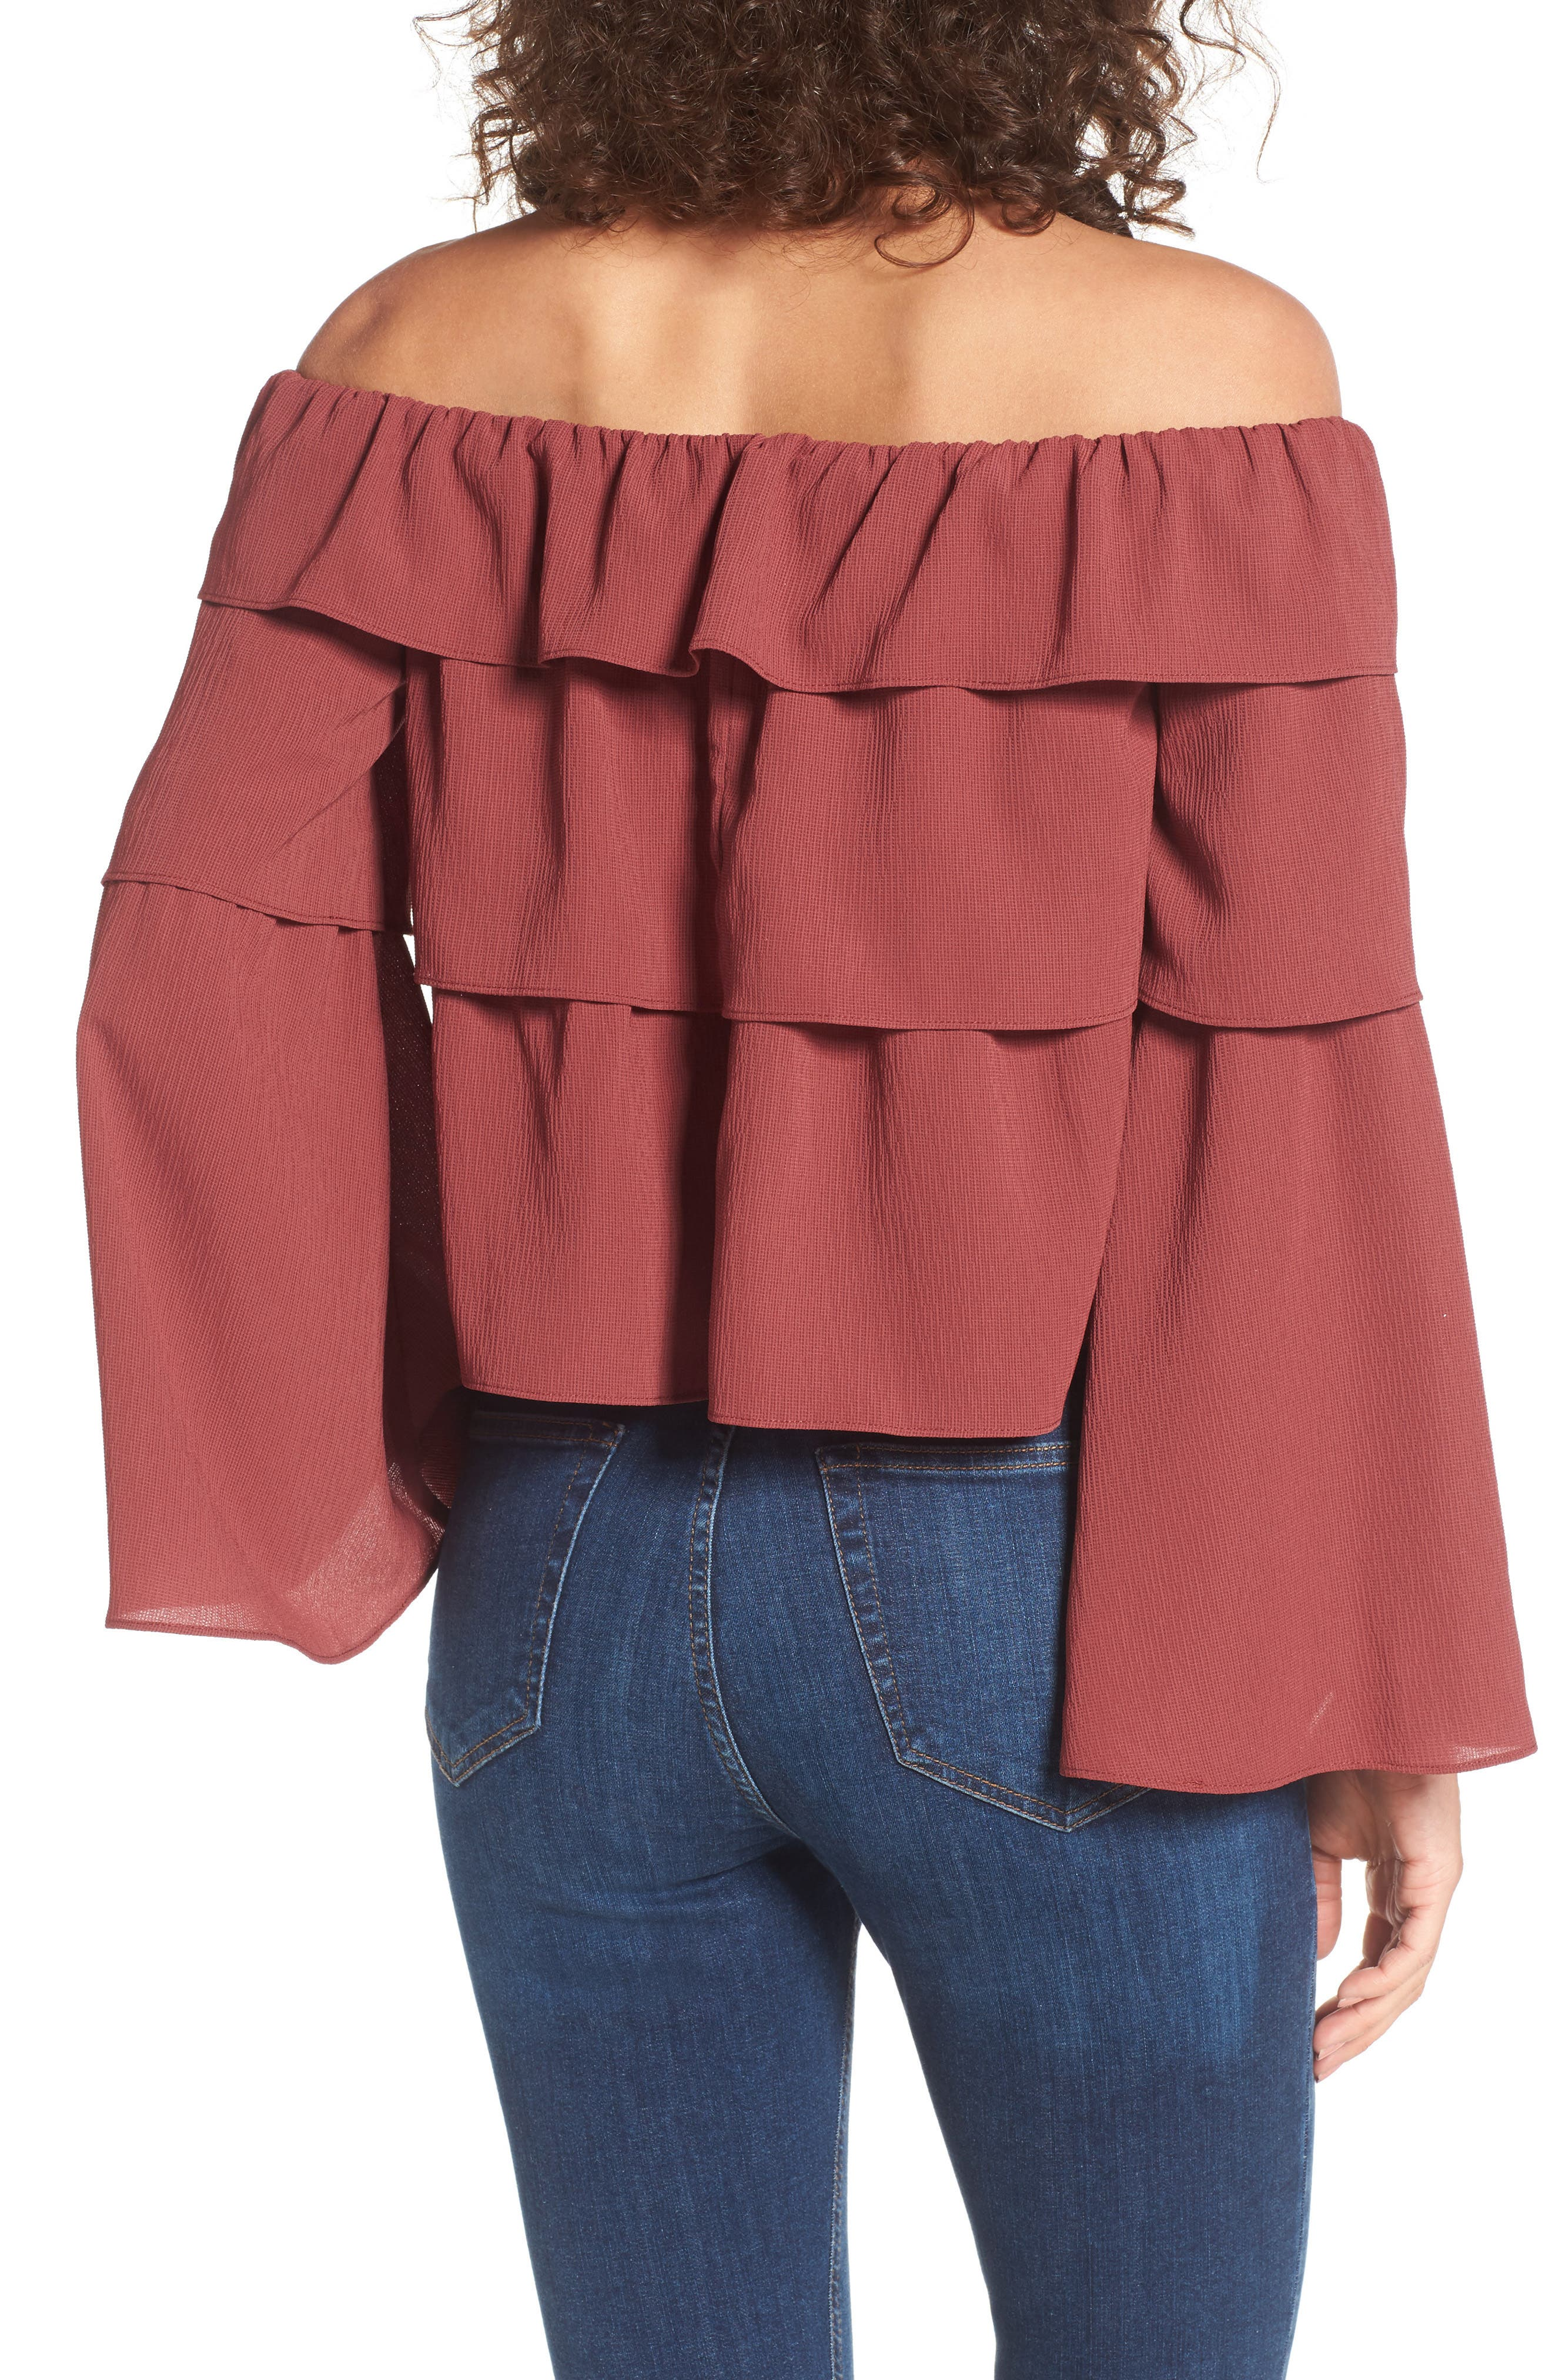 Ruffle Off the Shoulder Top,                             Alternate thumbnail 2, color,                             Rust